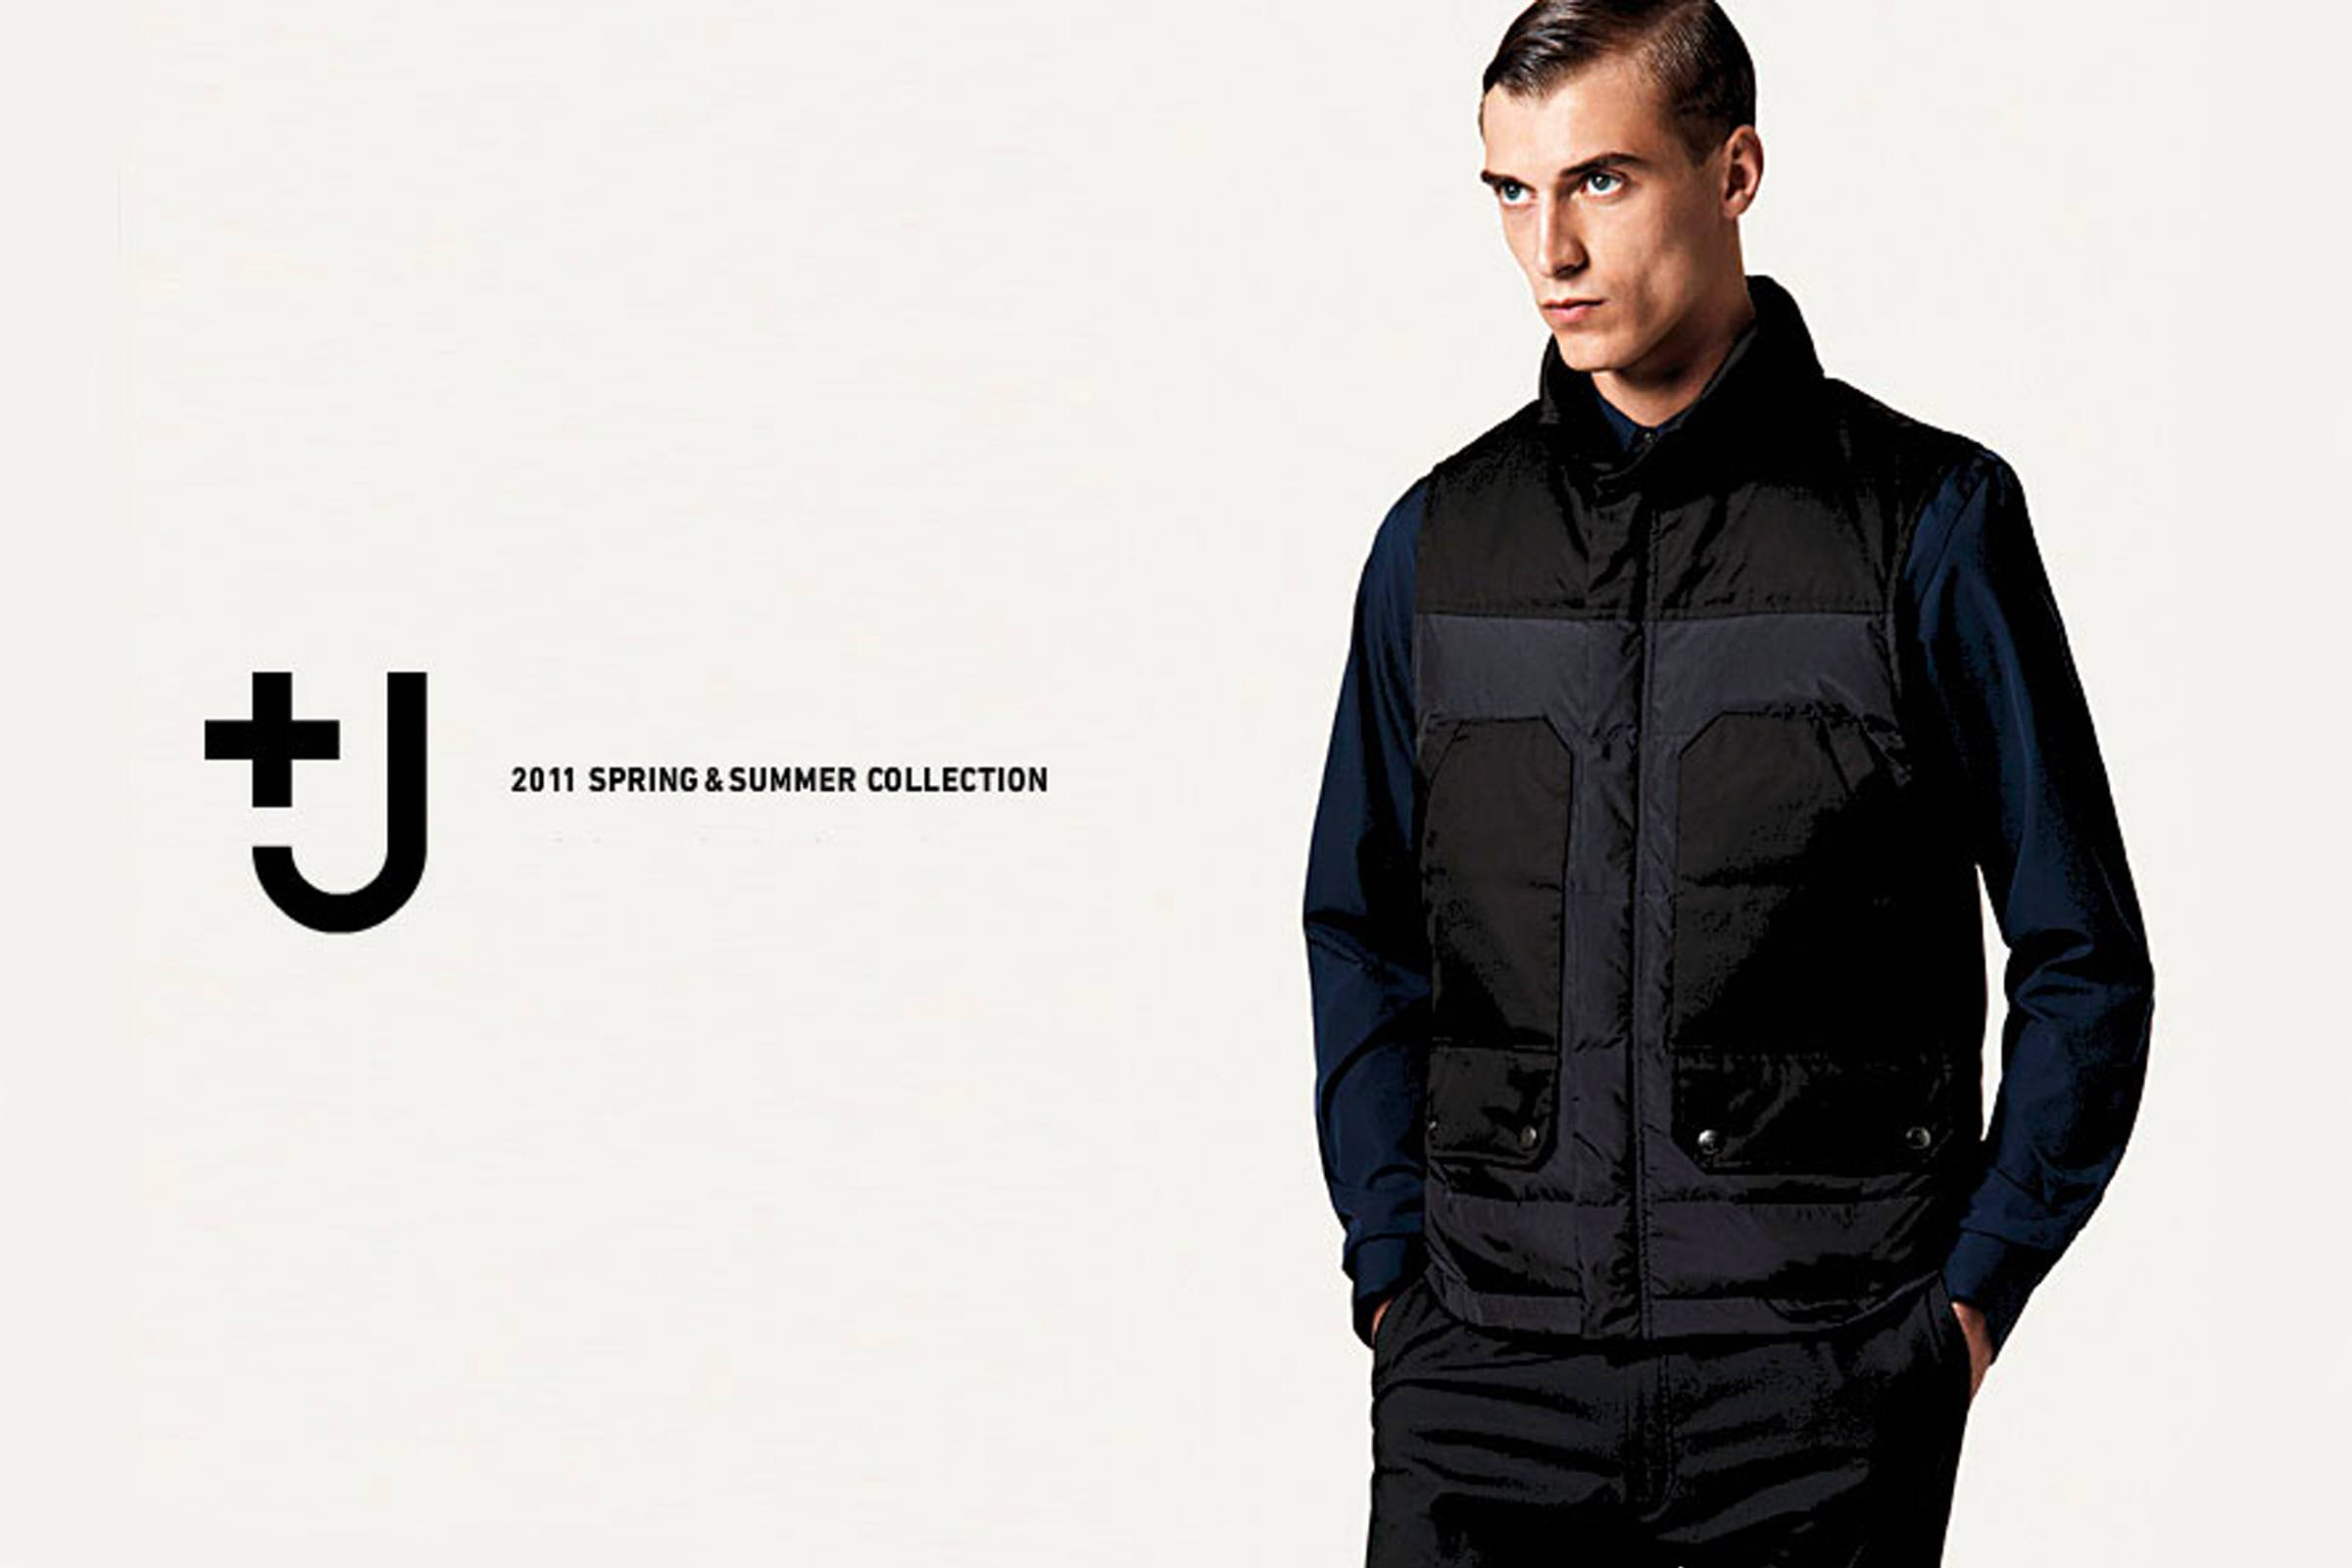 Ad from the Uniqlo +J Spring/Summer 2011 collection